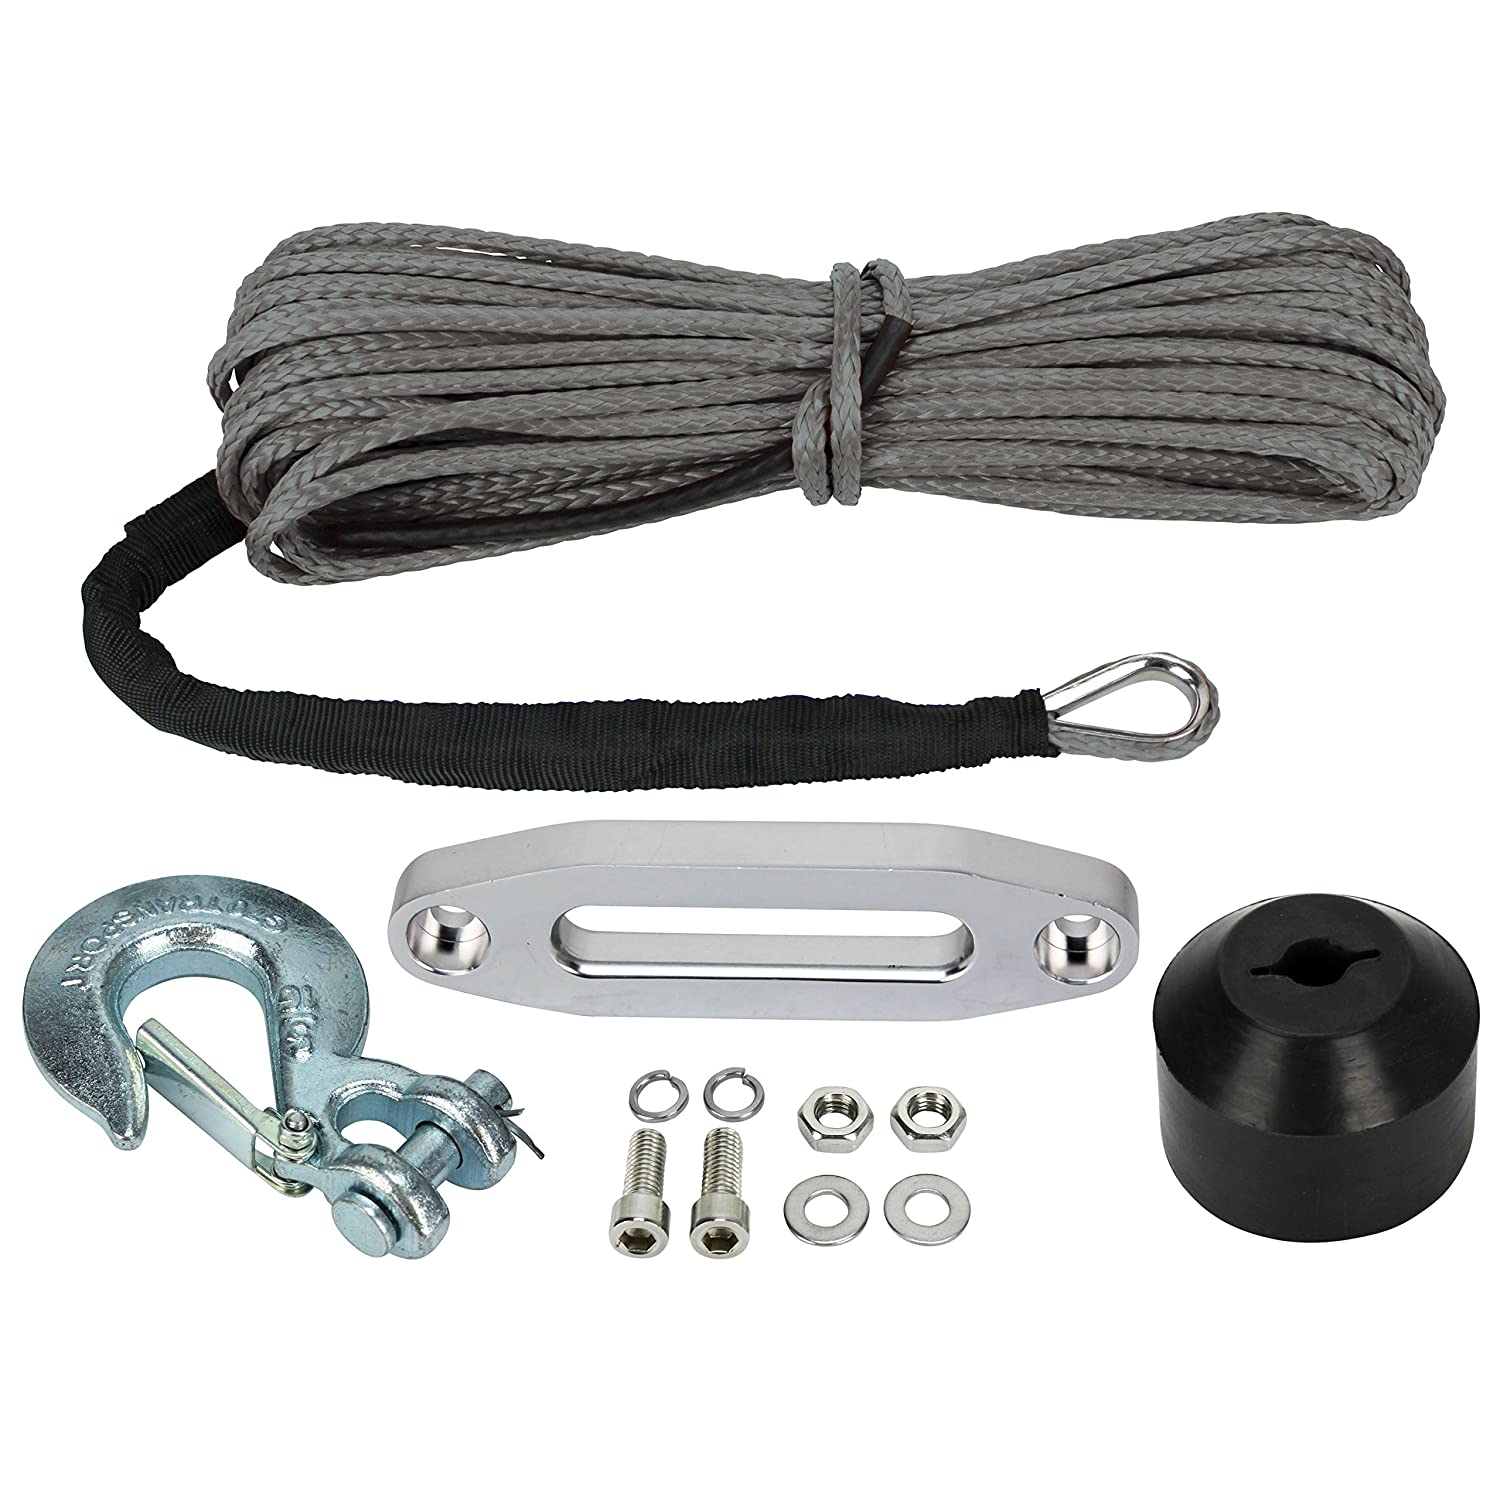 Extreme Max Products-5600.3103 W-Inch Rope Kit